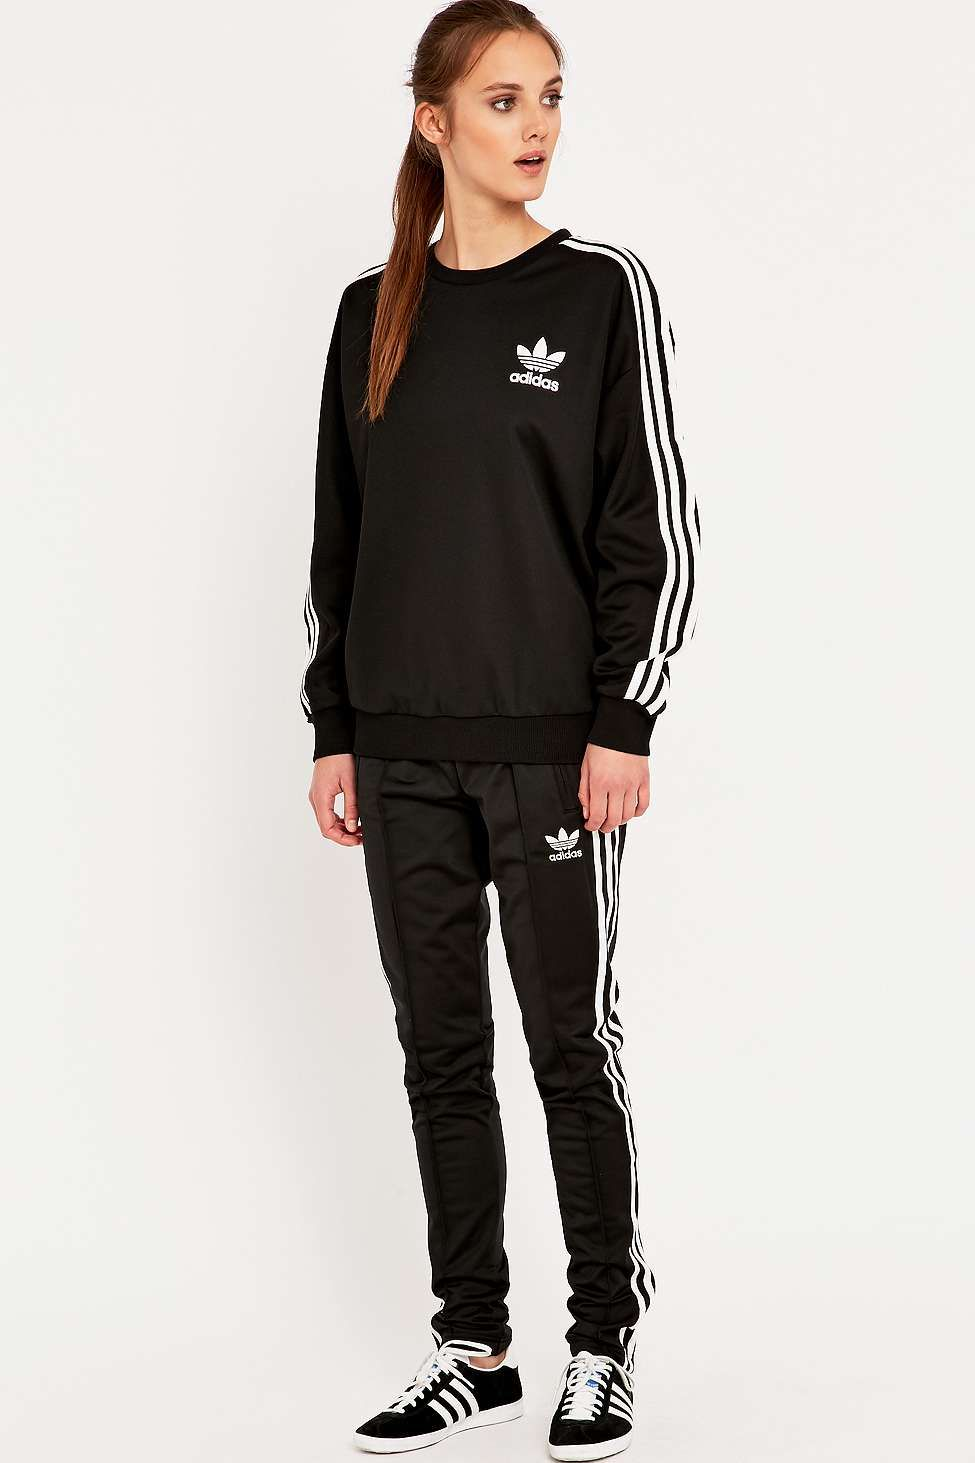 adidas originals pantalon de jogging slim supergirl linge pantalons de jogging et sports. Black Bedroom Furniture Sets. Home Design Ideas